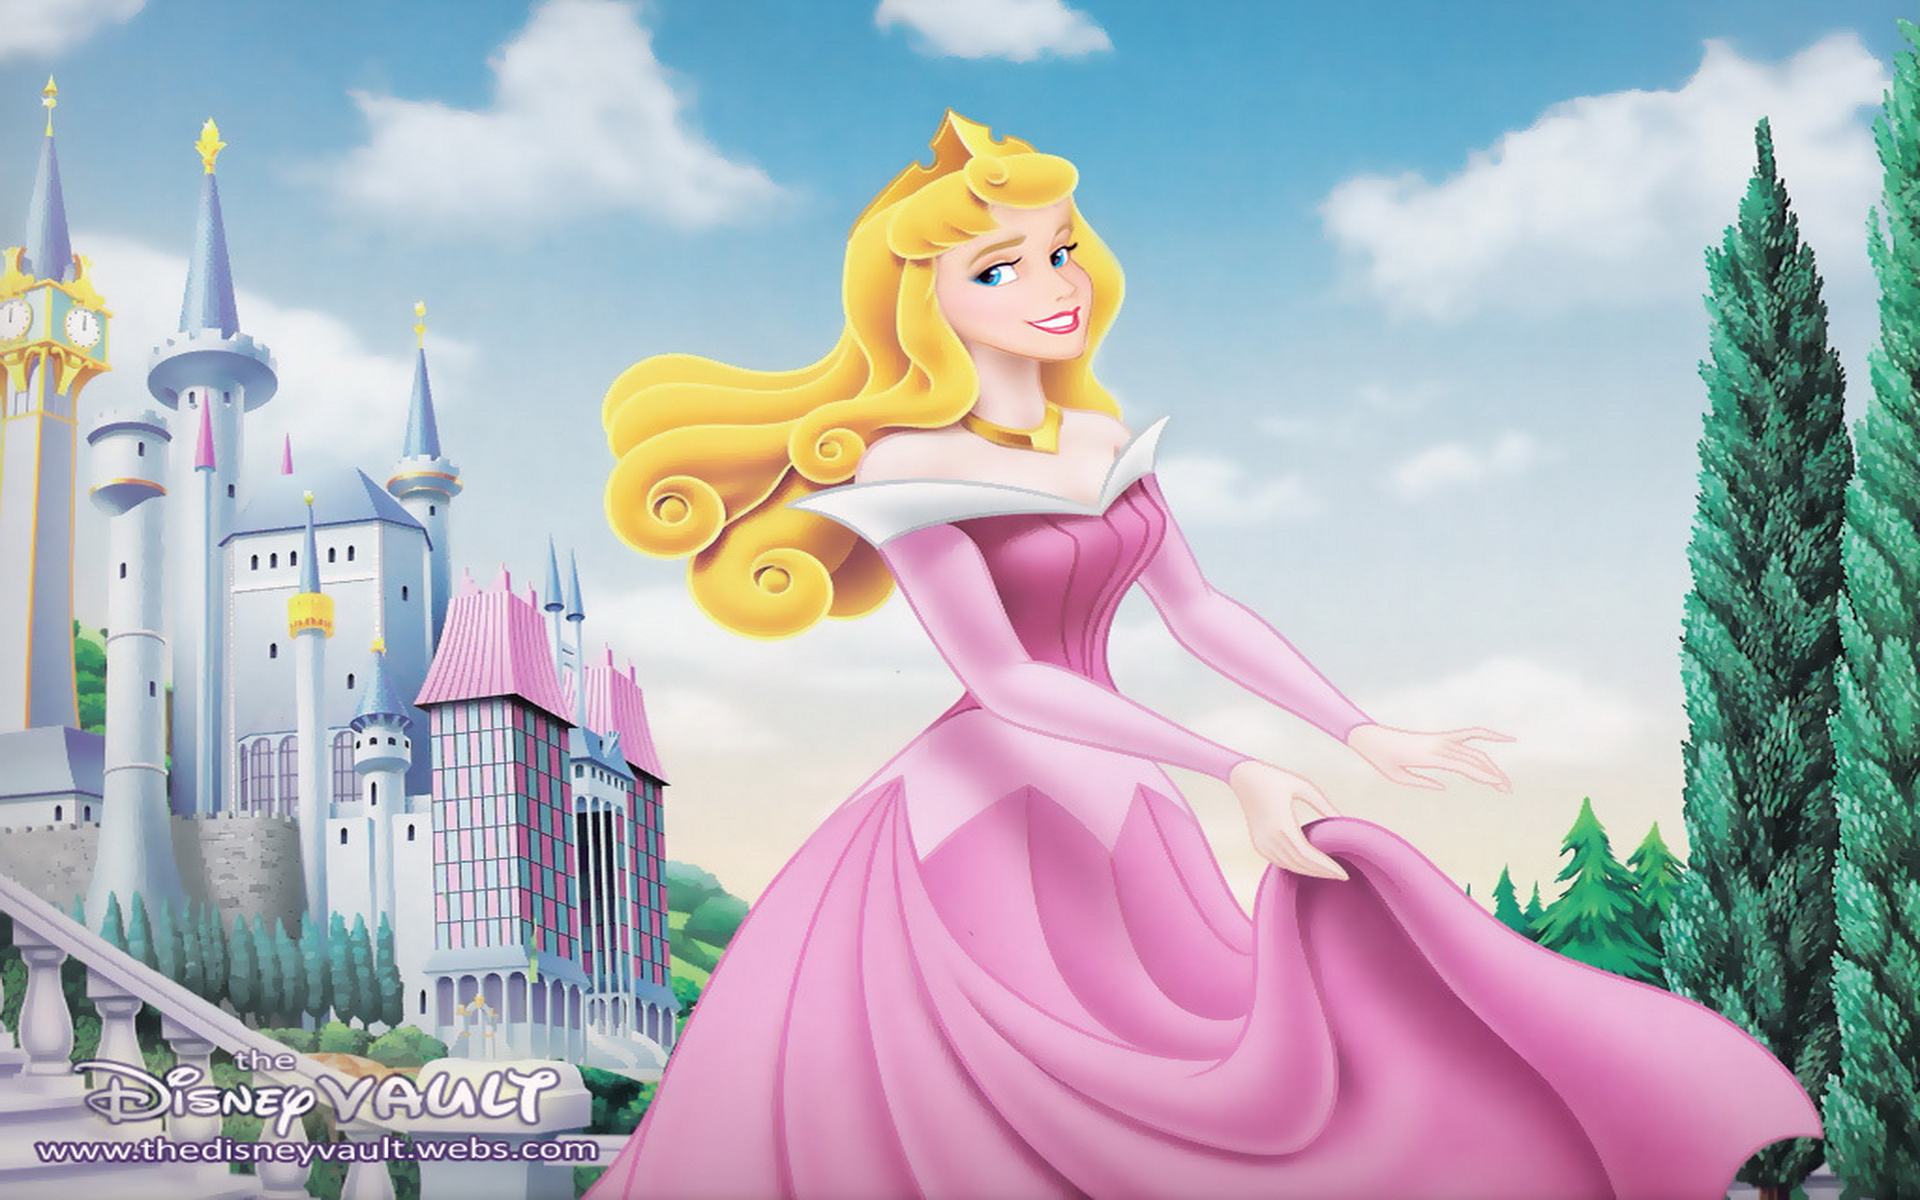 disney princess wallpaper high definition is high definition wallpaper 1920x1200